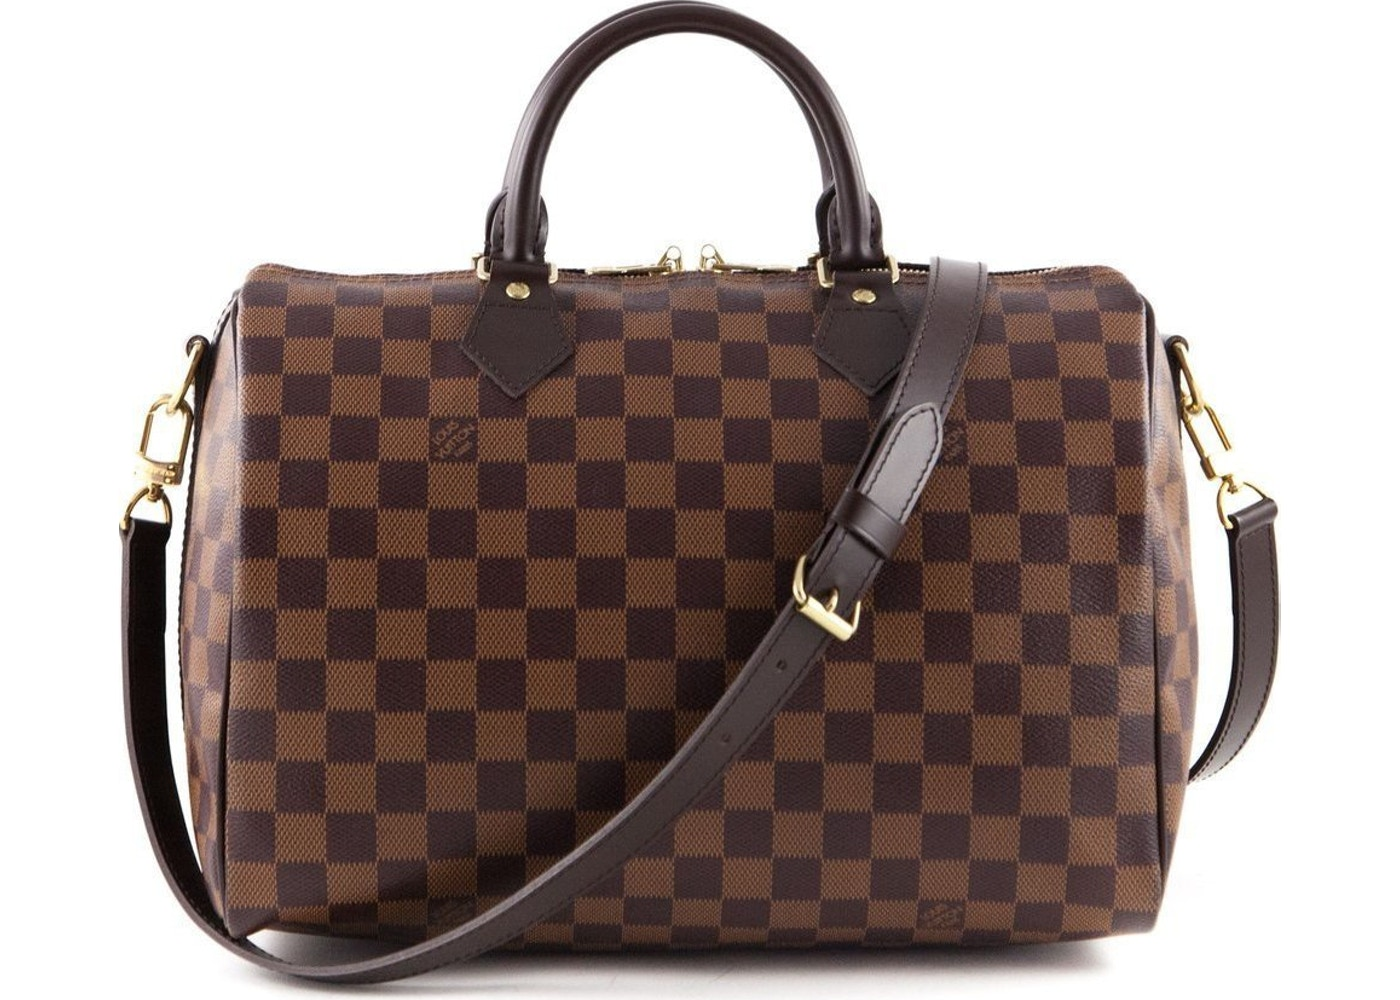 louis vuitton speedy bandouliere damier ebene 30 brown. Black Bedroom Furniture Sets. Home Design Ideas